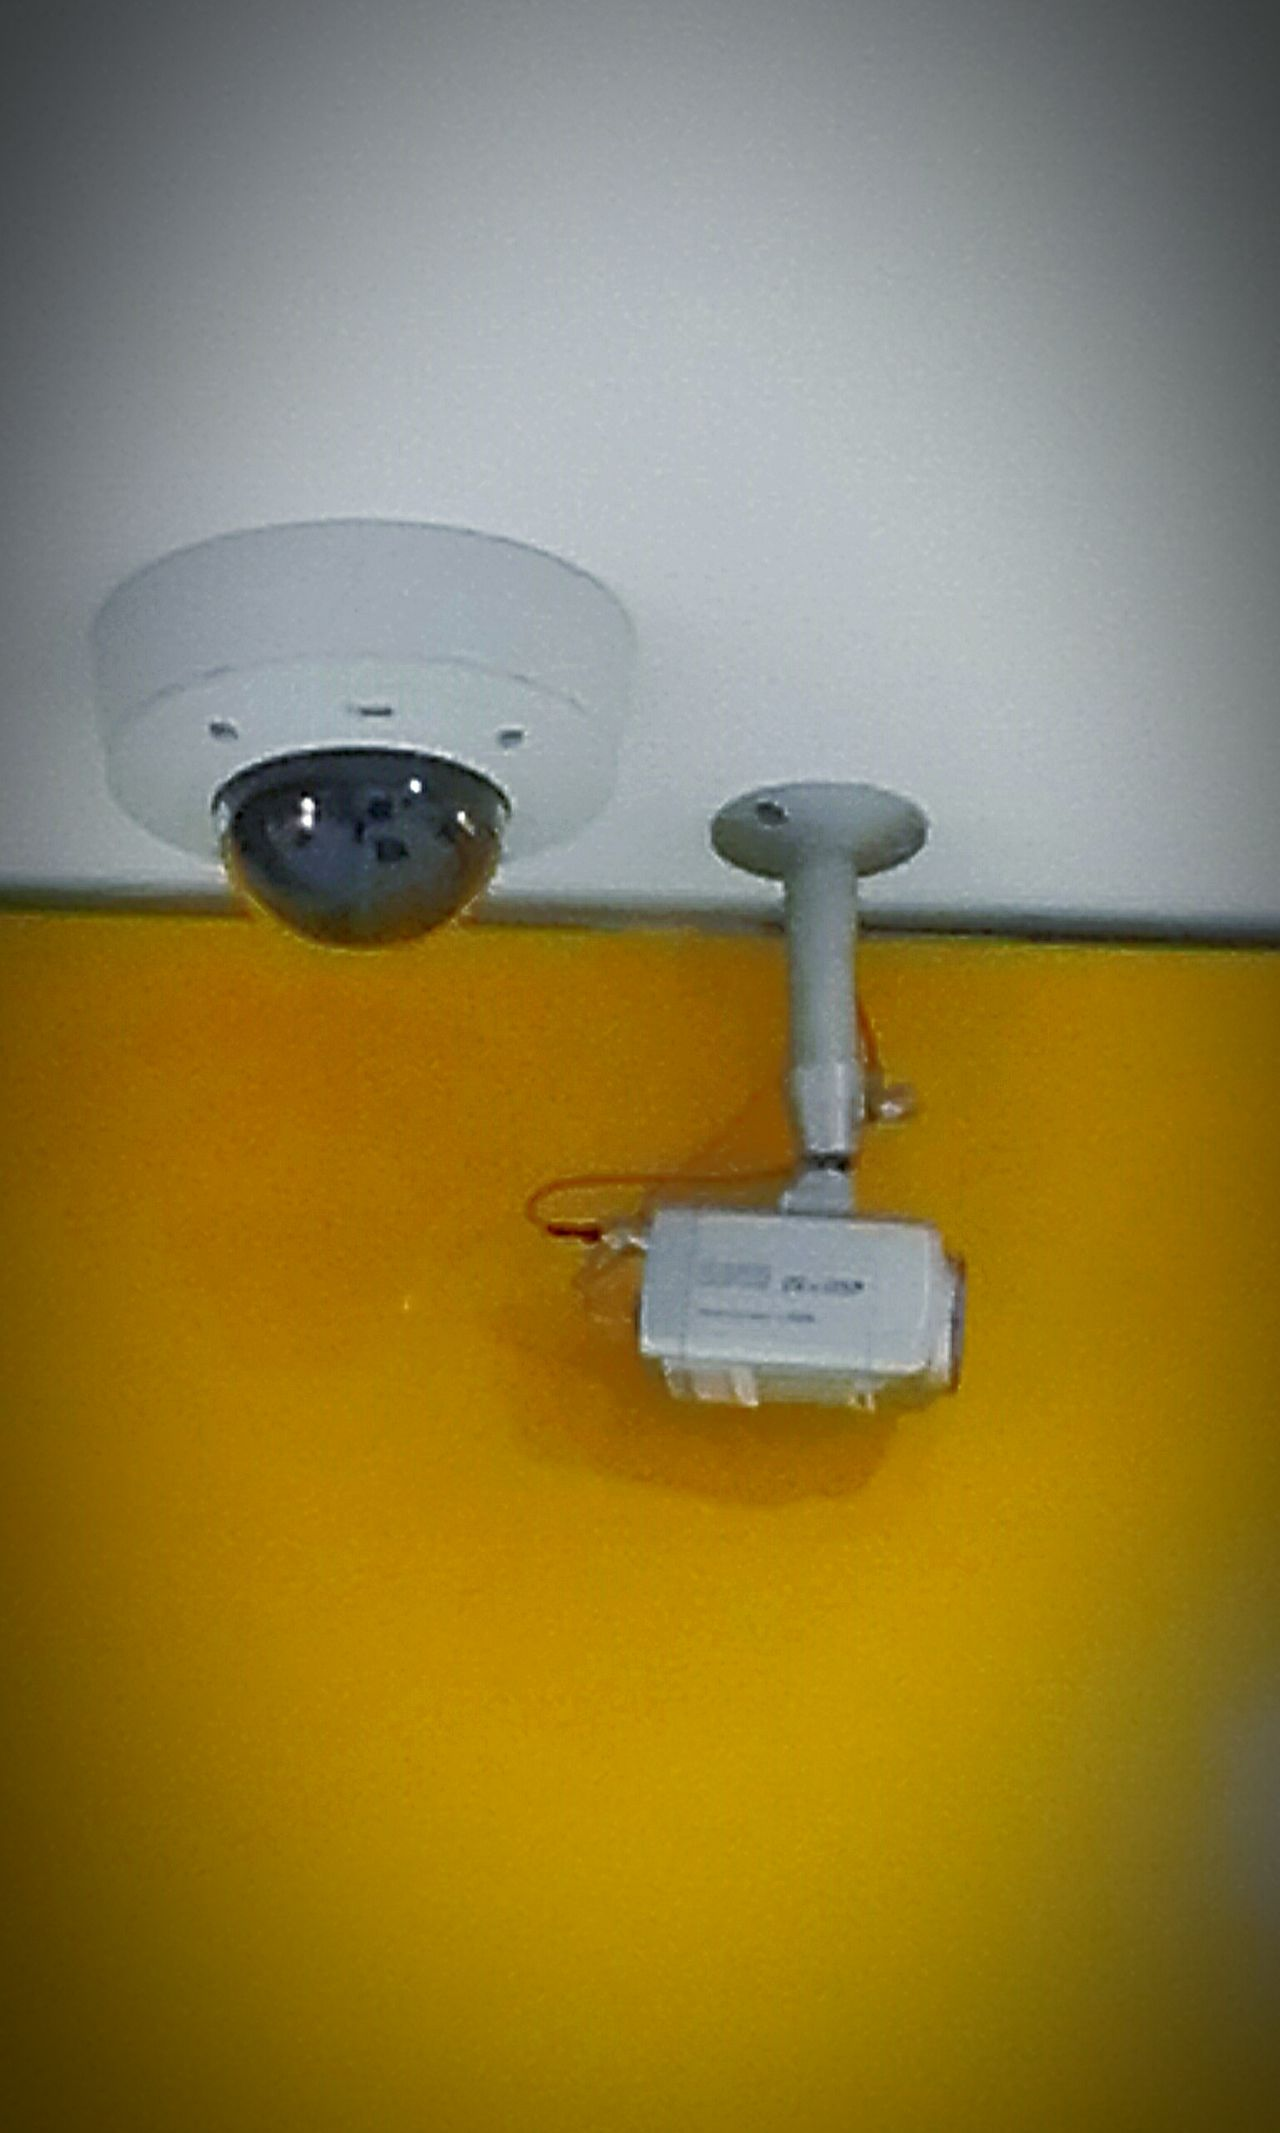 Security Camera Security Cam Securitycamera Securitycam Security System Camera Surveillance Cameraporn Security In The Interest Of Public Safety Surveillance Camera Camera Securitas Camera Porn Surveillancecameras Big Brother Is Watching Big Brother Is Watching You Surveillance Closed Circuit Tv Closed Circuit Camera Cctv Dome Surveillance Cam ClosedCircuitCamera Under Constant Surveillance Big Brother ClosedCircuitCameras